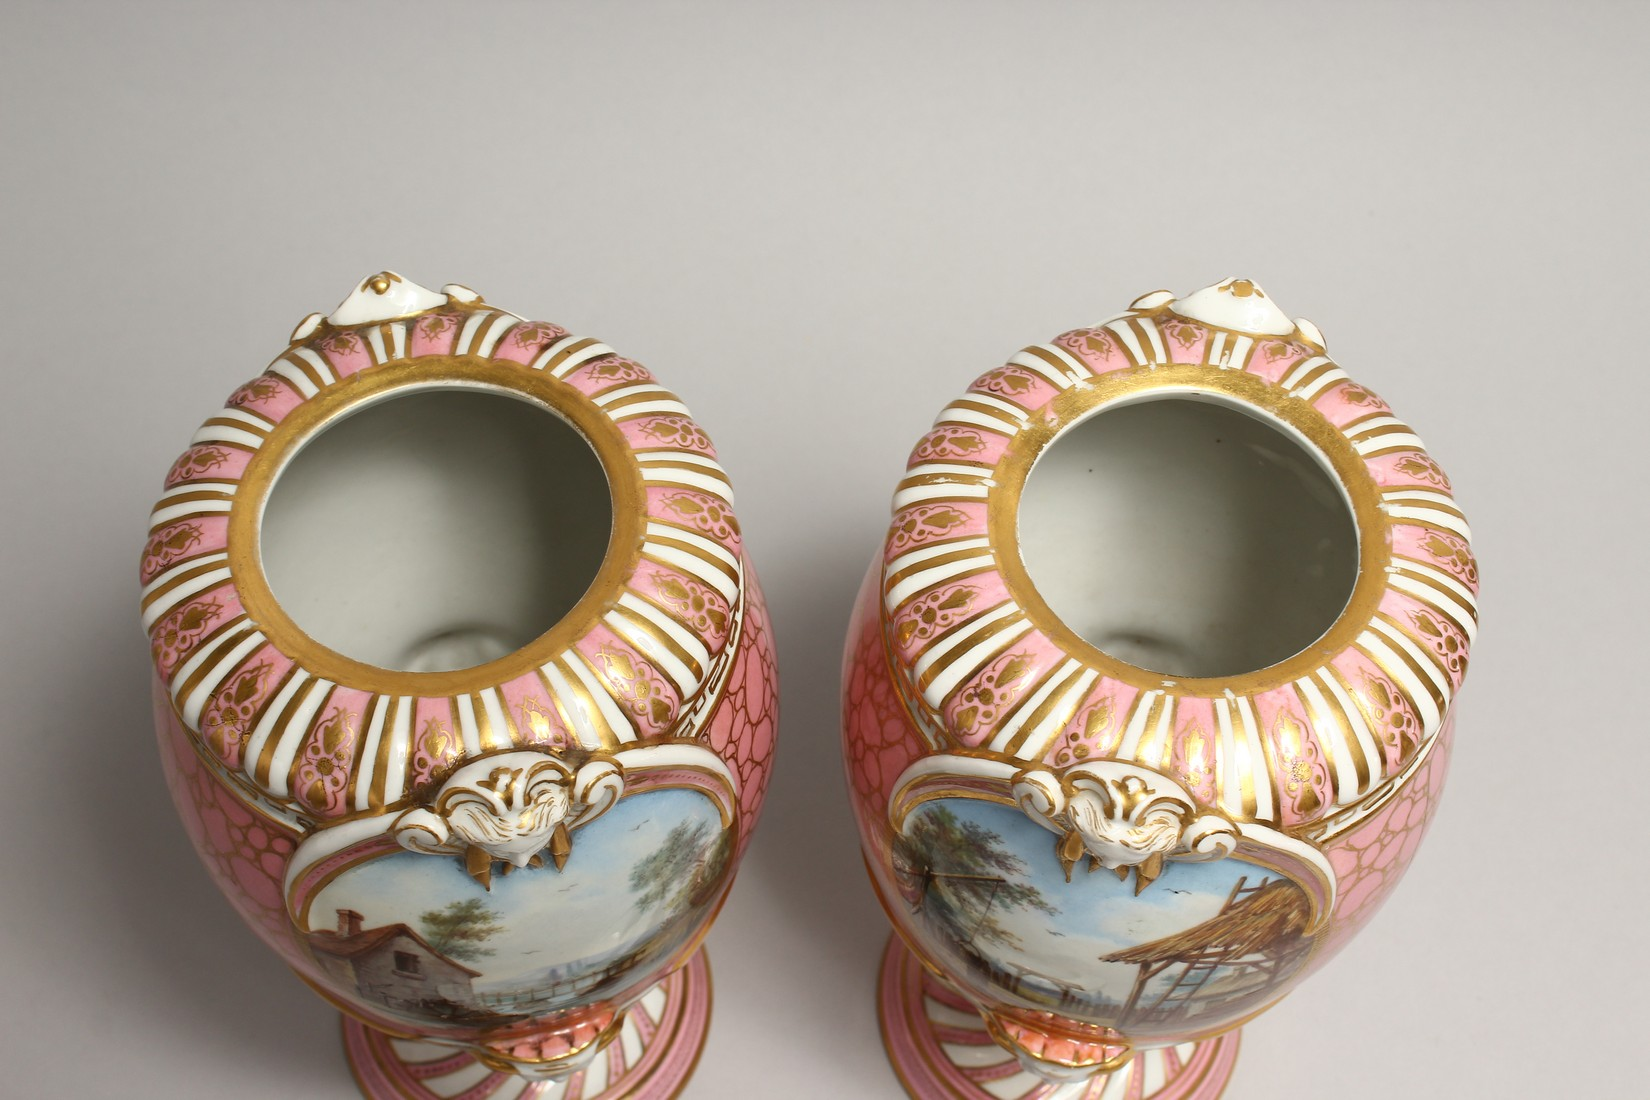 A VERY GOOD PAIR OF SEVRES PINK GROUND VASES AND COVERS each painted with reverse panels of figures, - Image 7 of 12